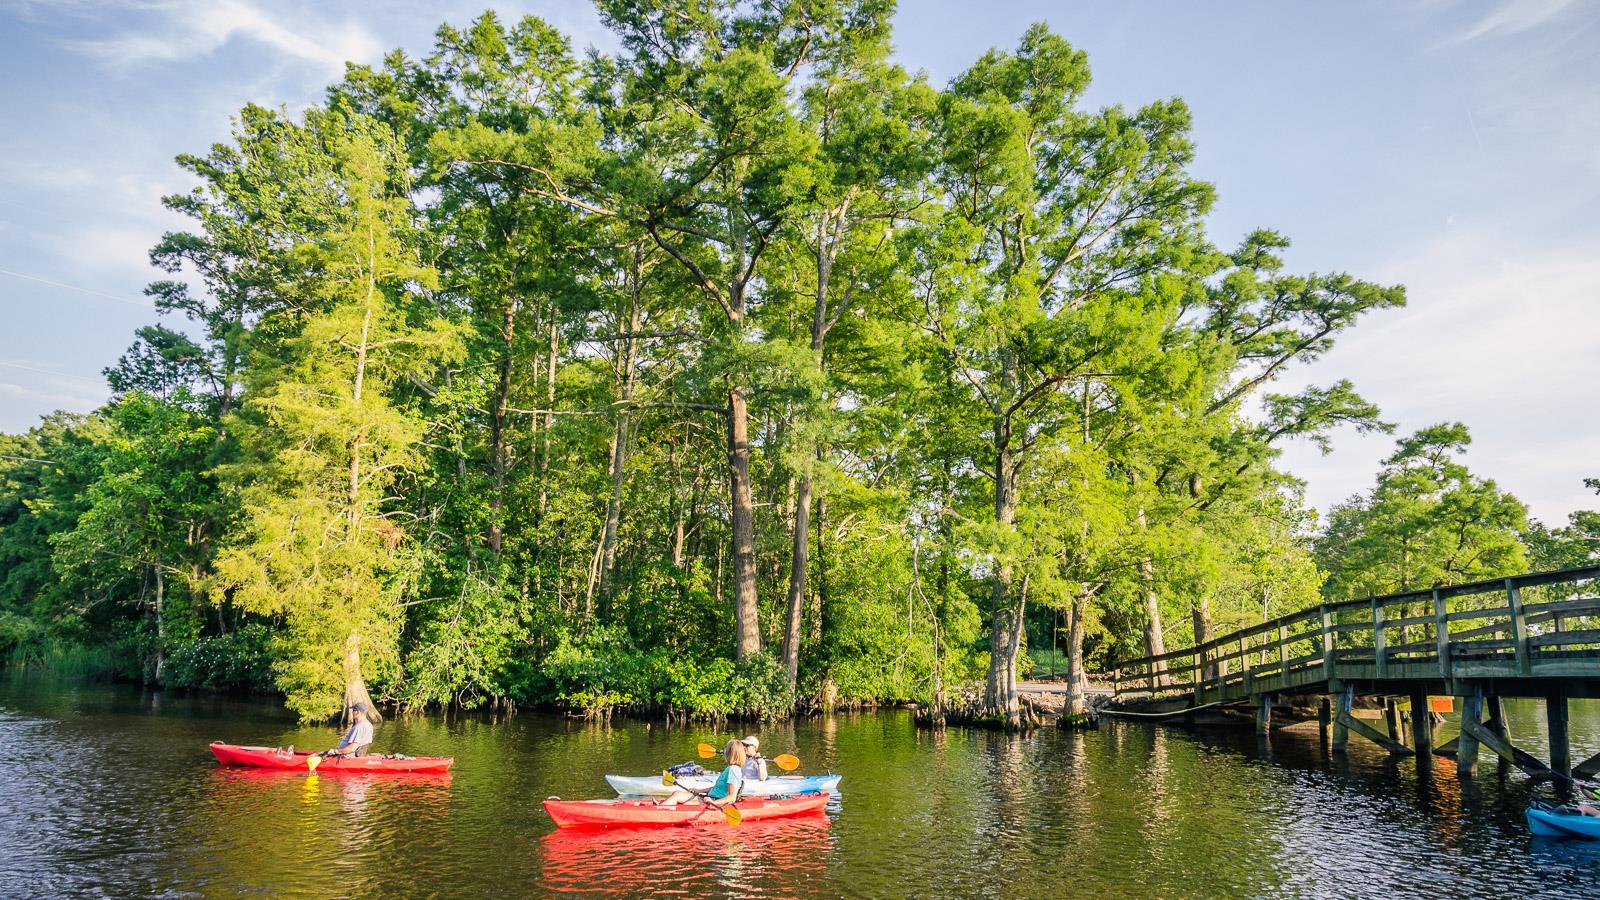 Kayaking on Queen Anne Creek, Edenton NC